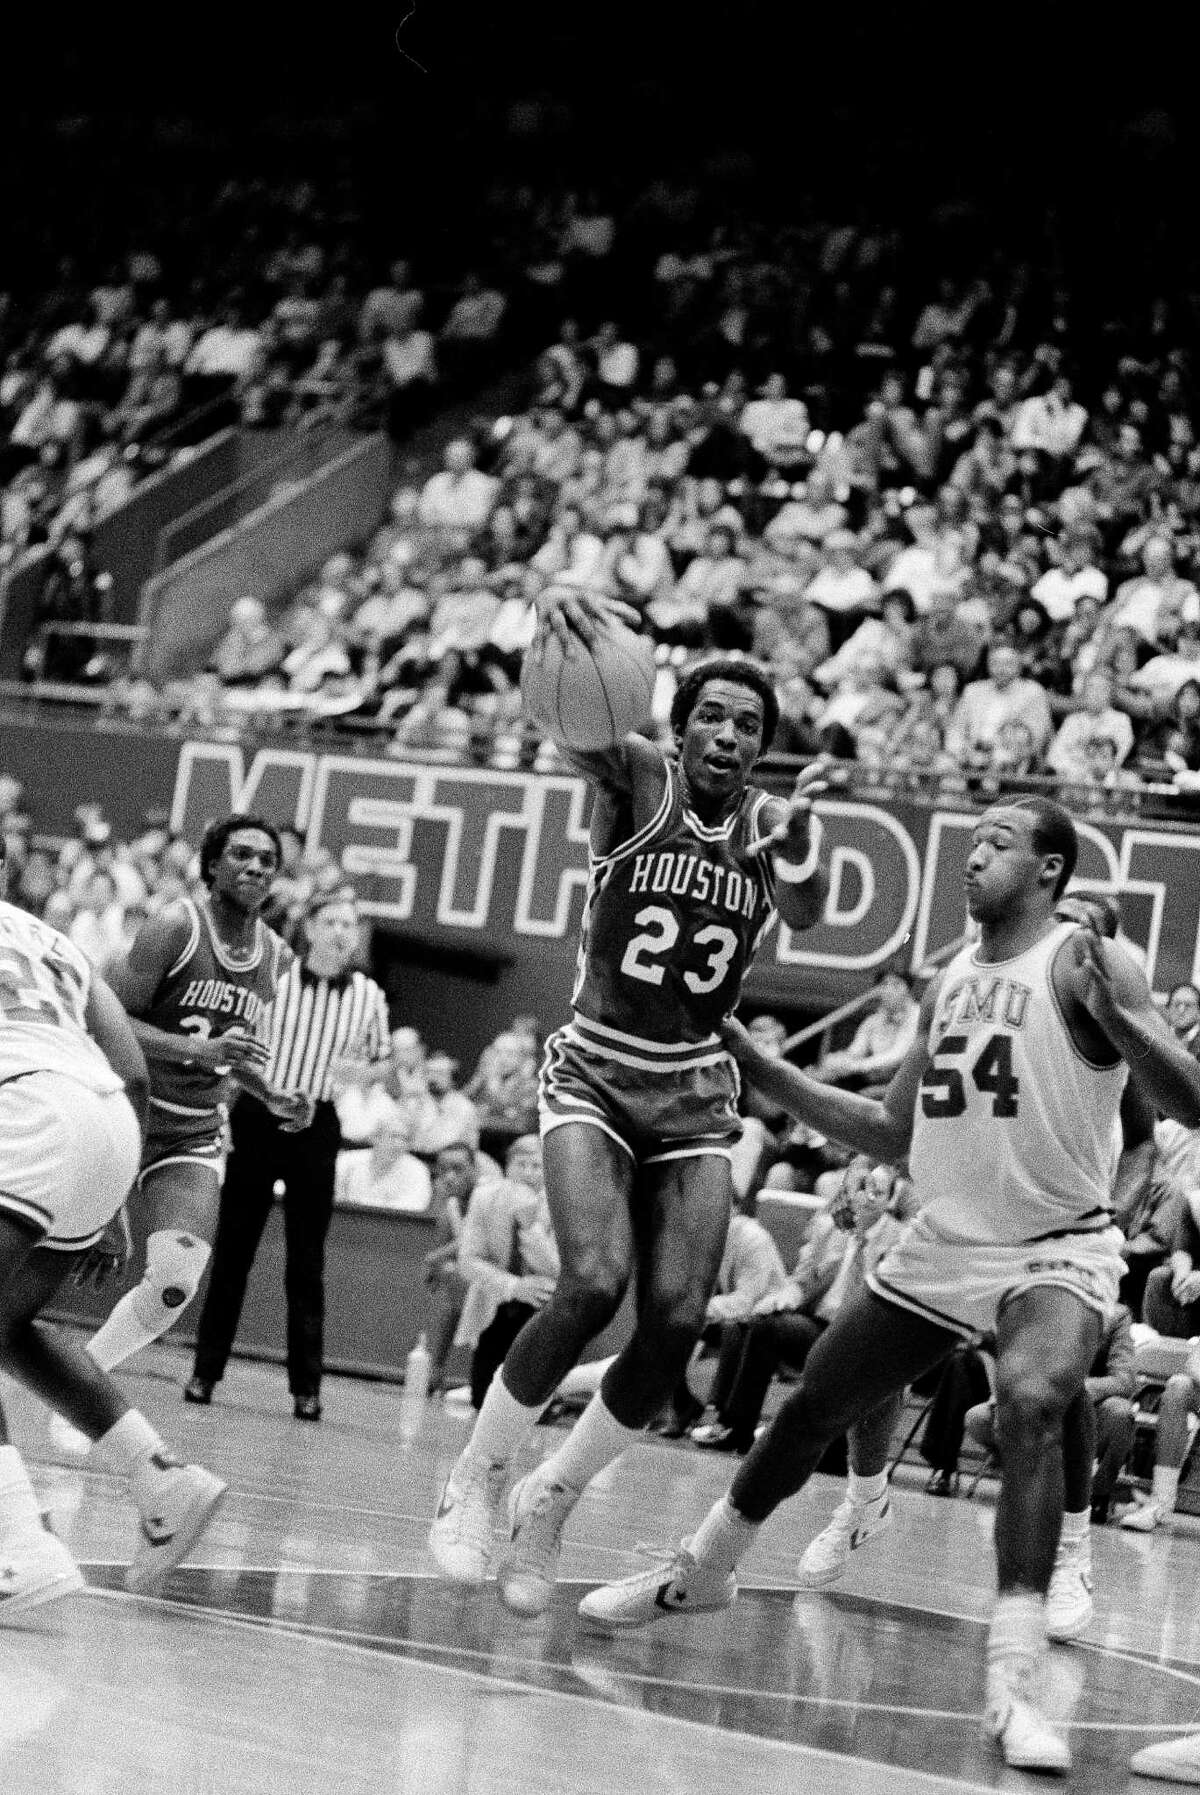 University of Houston's Clyde Drexler (23) loses control of the ball as he drives past Southern Methodist University's Larry Davis (54) in the first half of Southwest Conference play in Dallas, Feb. 9, 1983. Drexler was called for a penalty on the play.